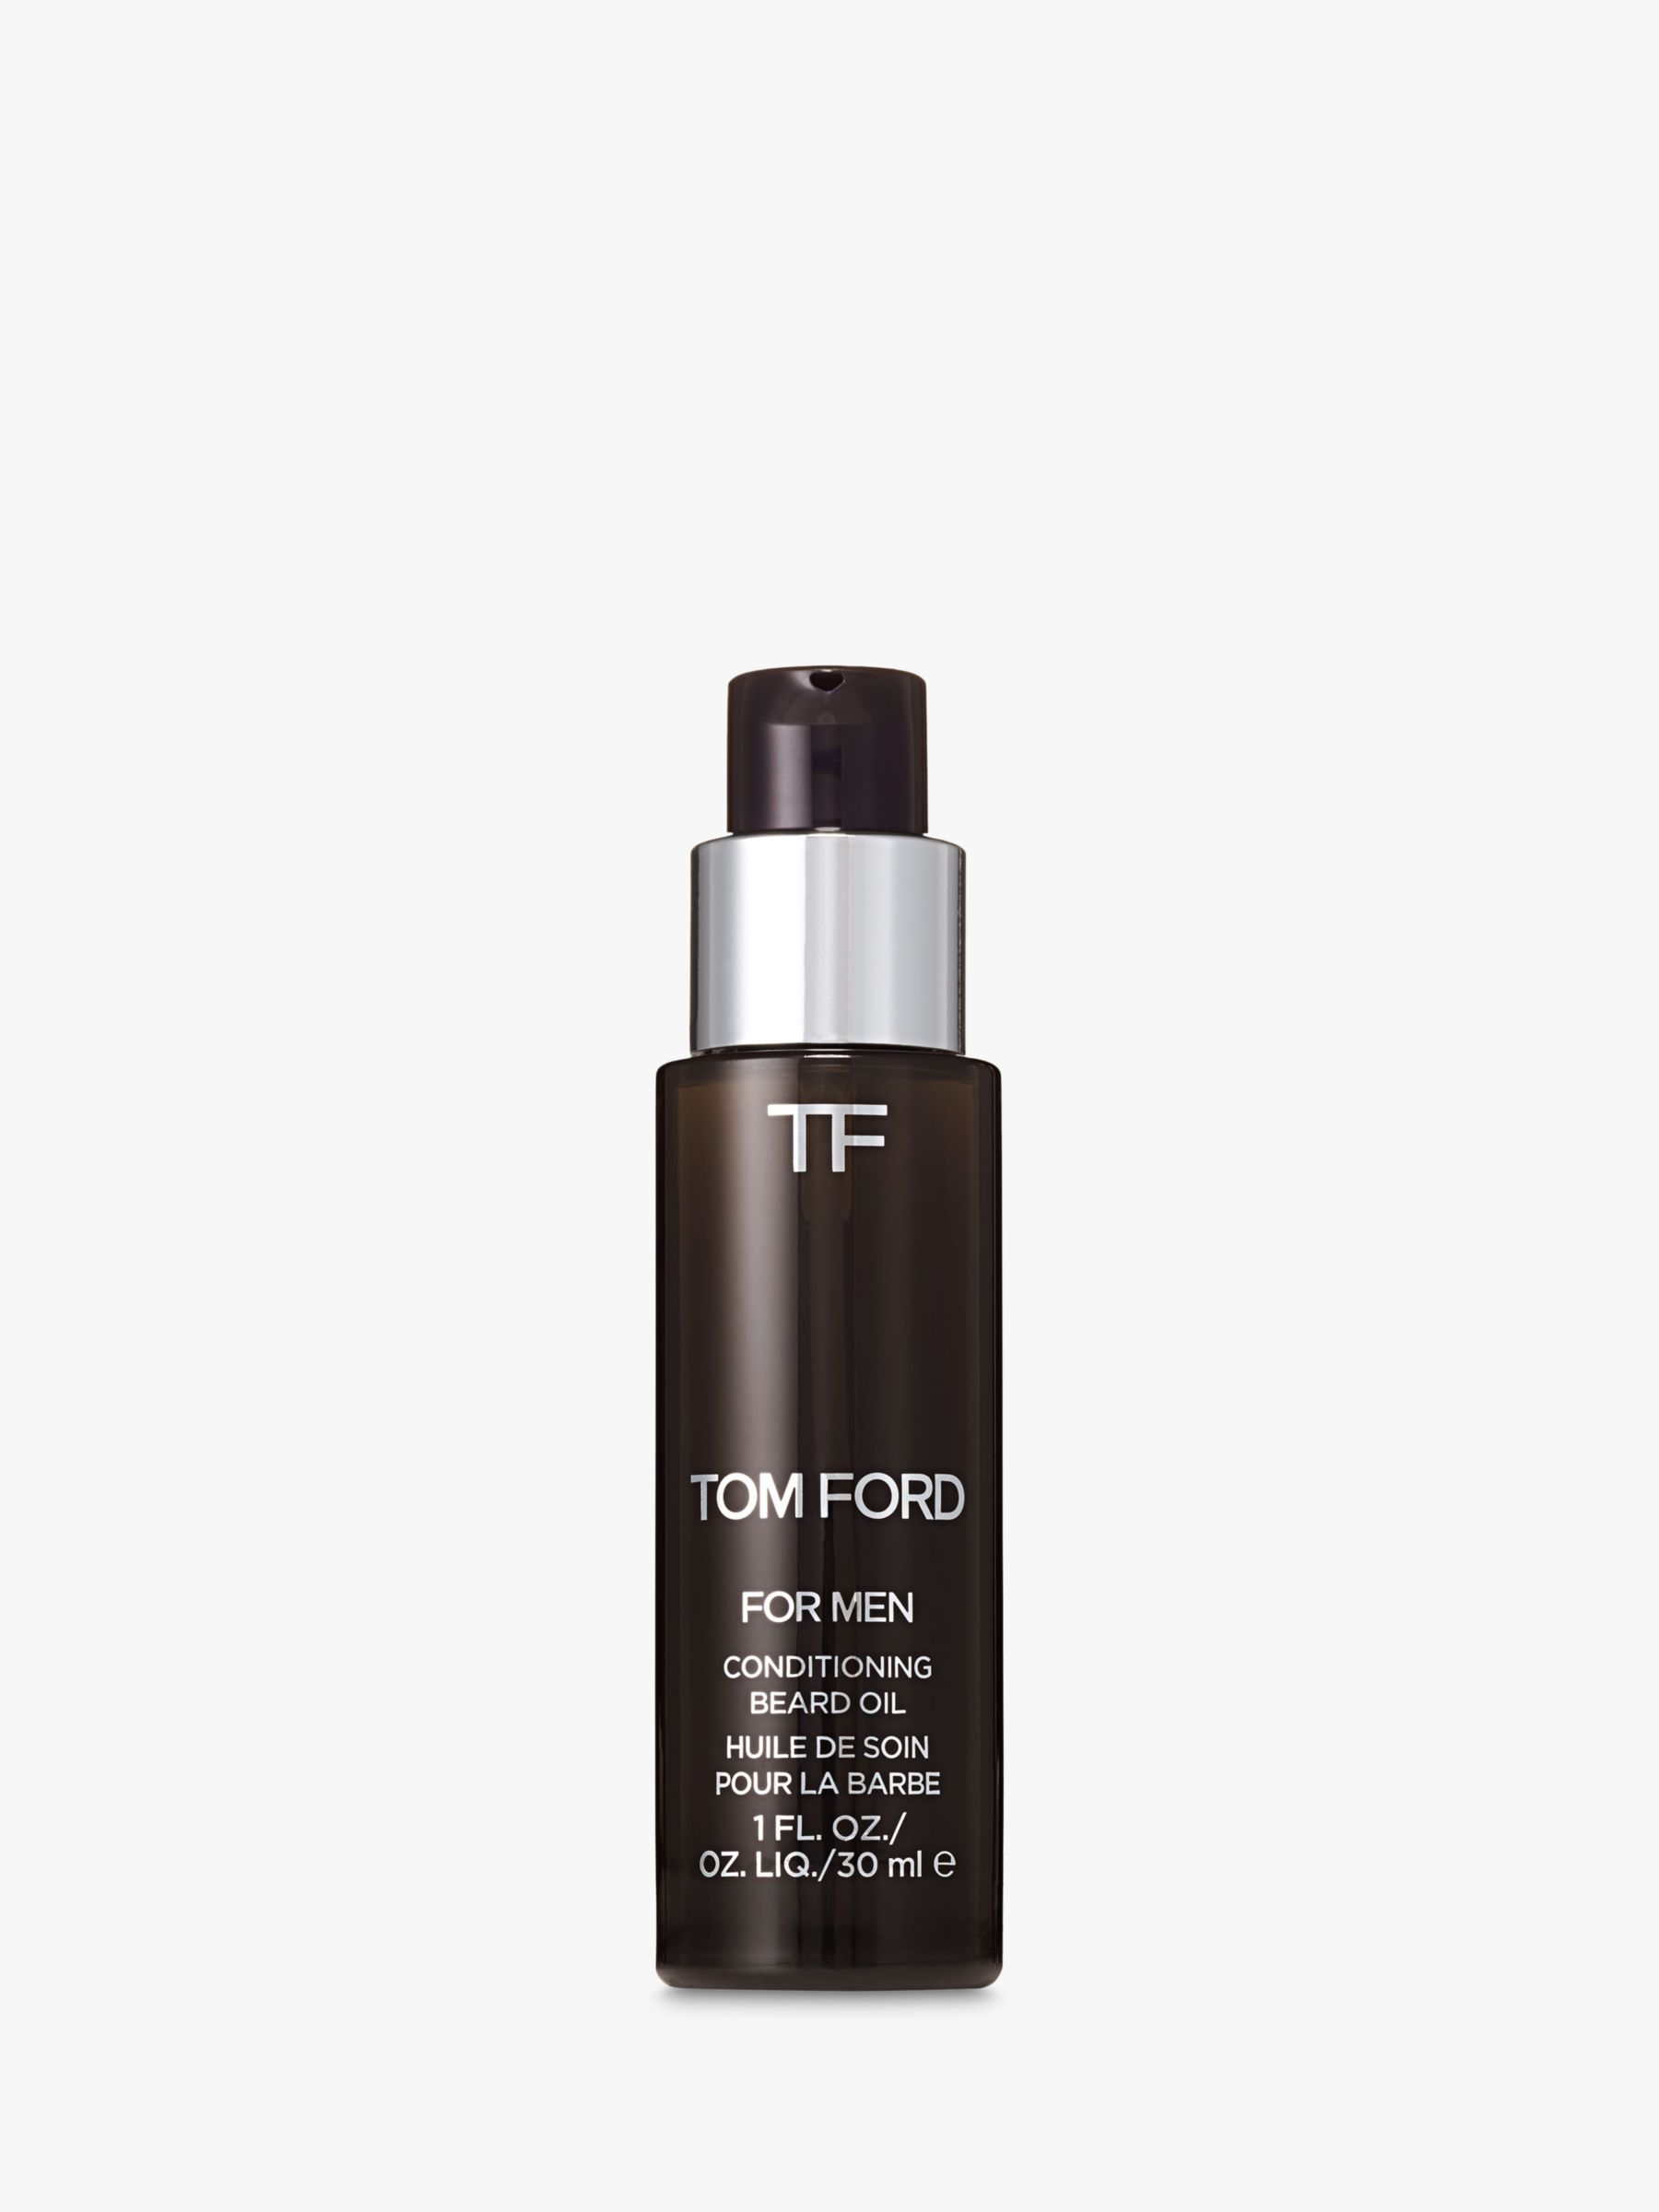 Tom Ford TOM FORD For Men Oud Wood Conditioning Beard Oil, 30ml